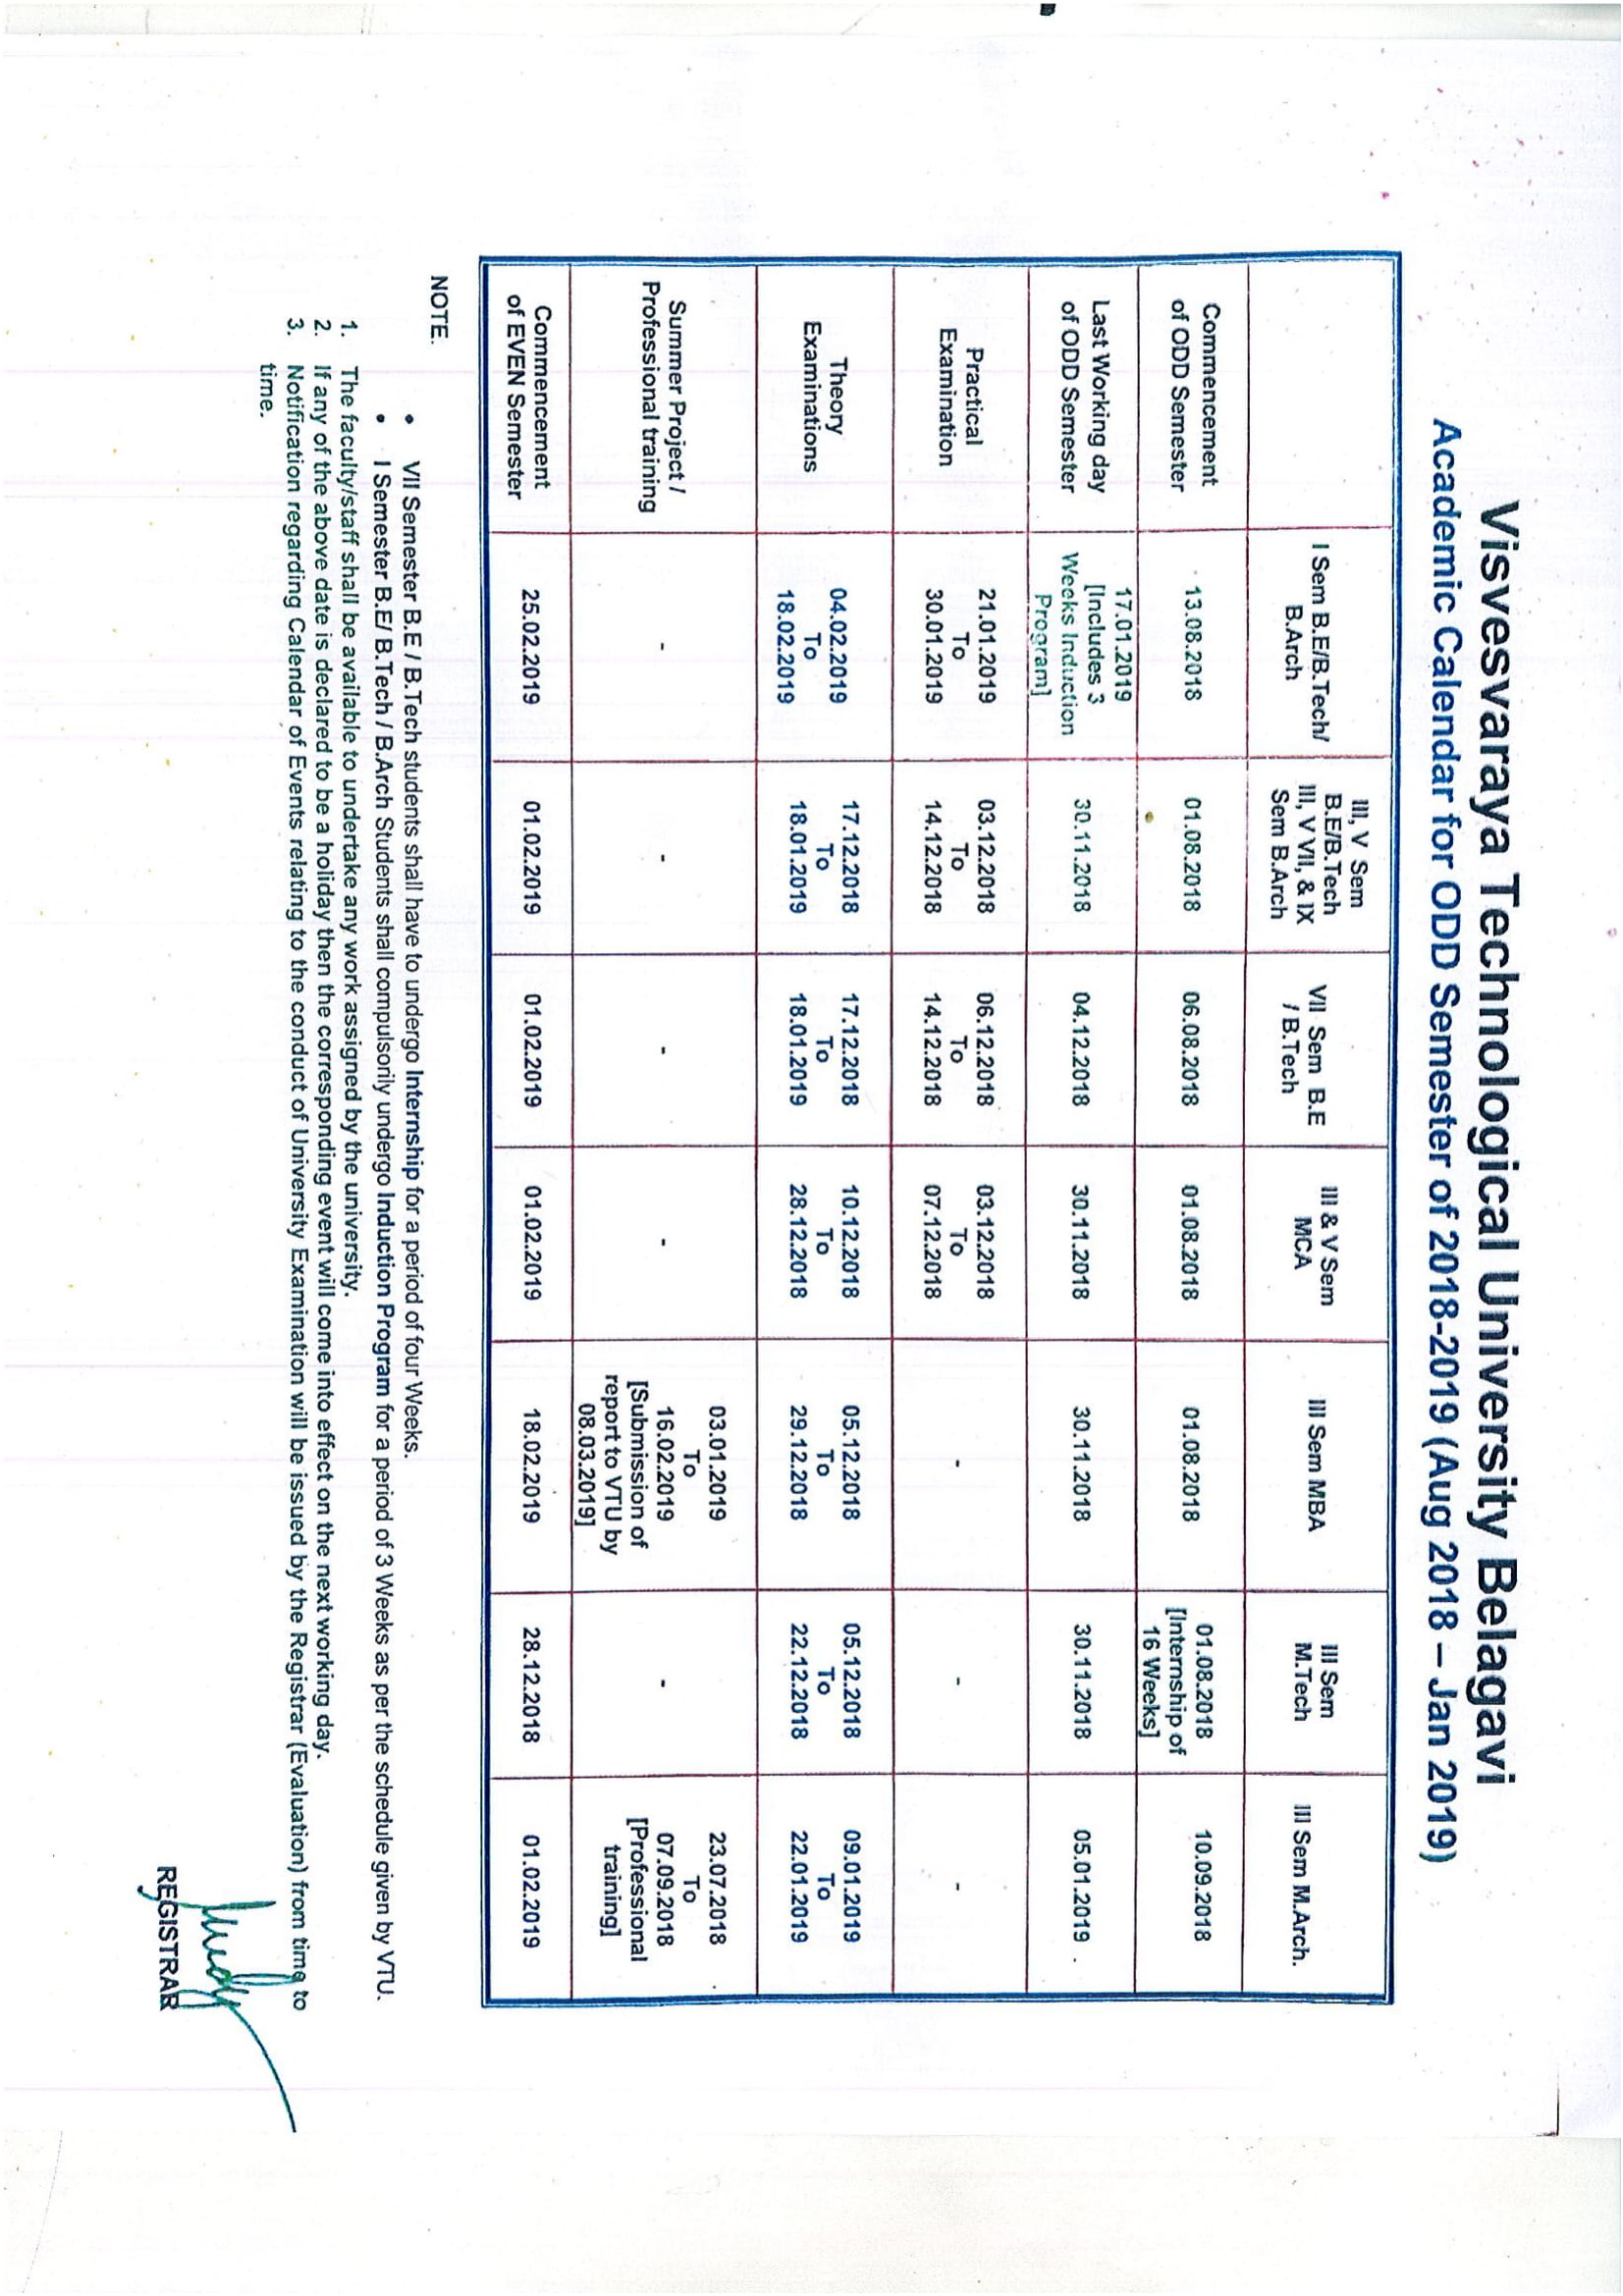 Academic Calendar for the ODD Semester 2018- 19